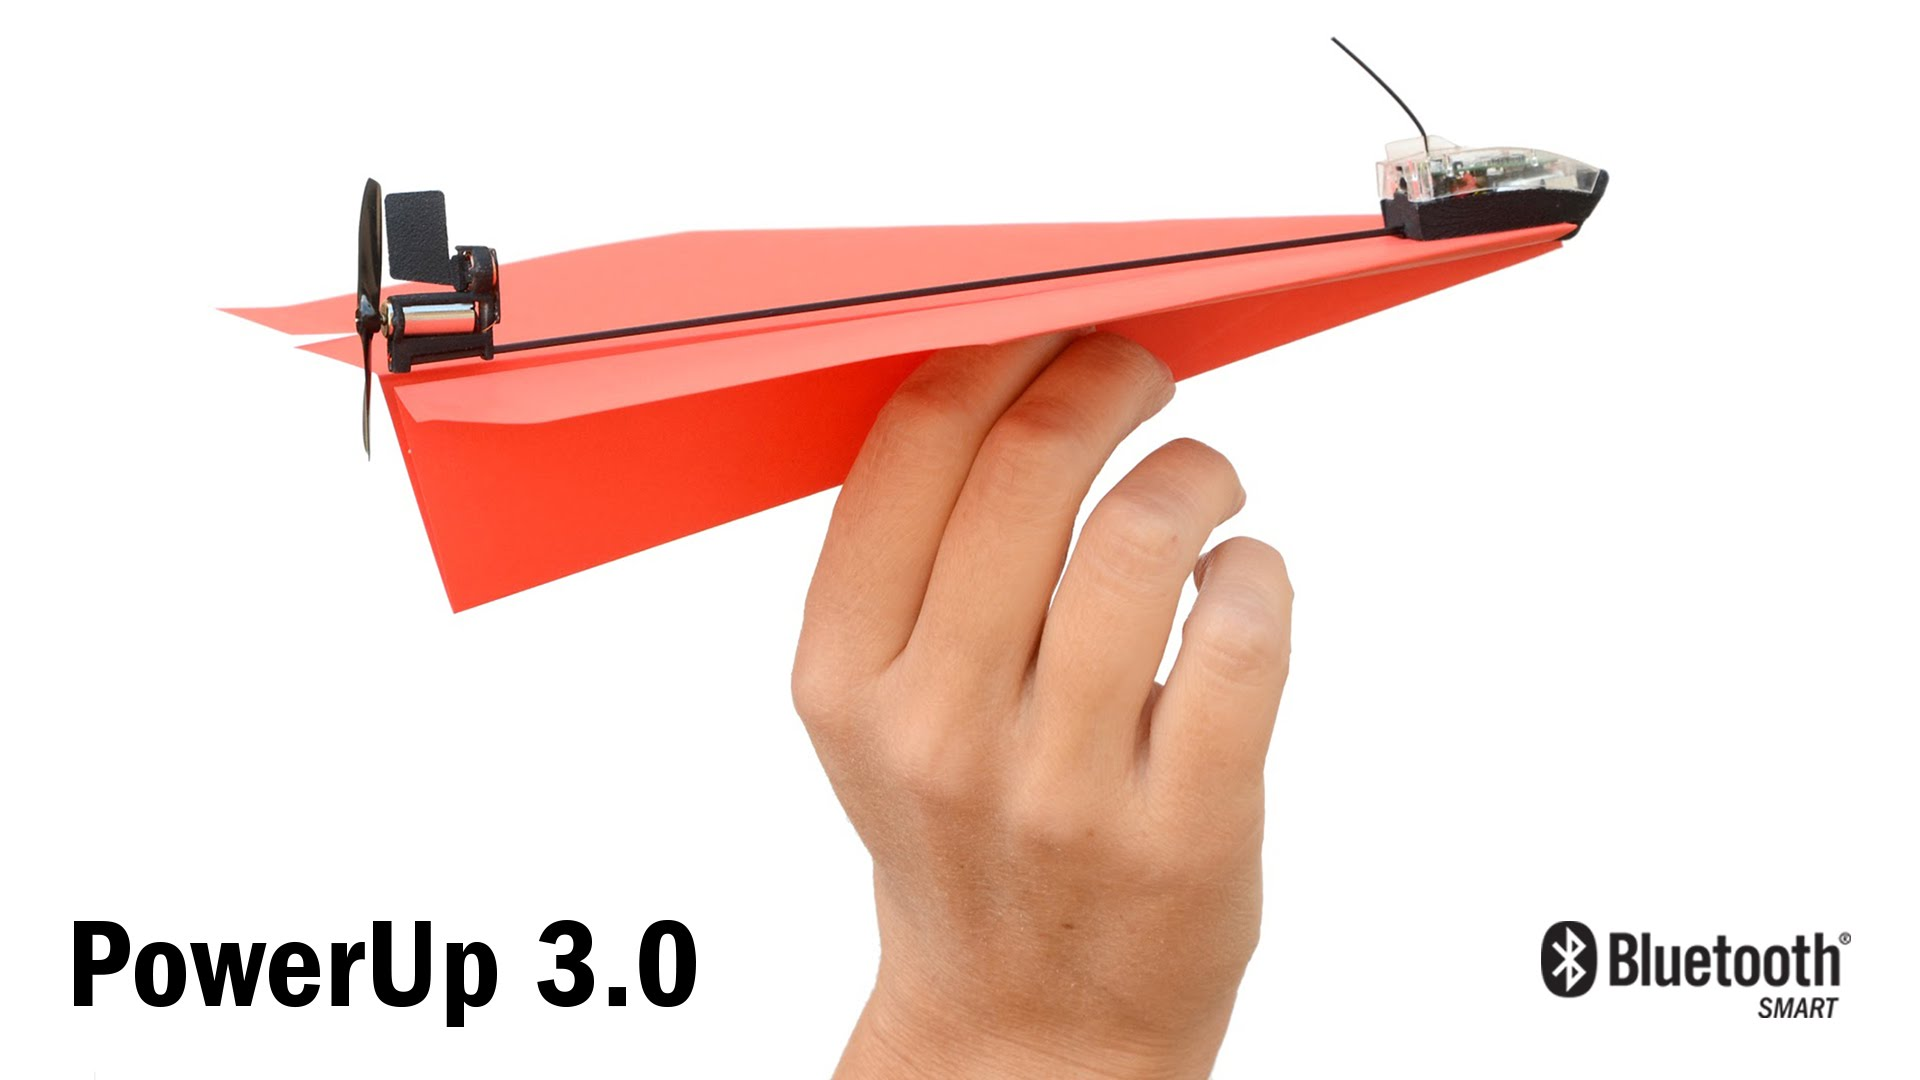 「我的遙控『紙』飛機」- PowerUp 3.0 Smartphone Controlled Paper Airplane